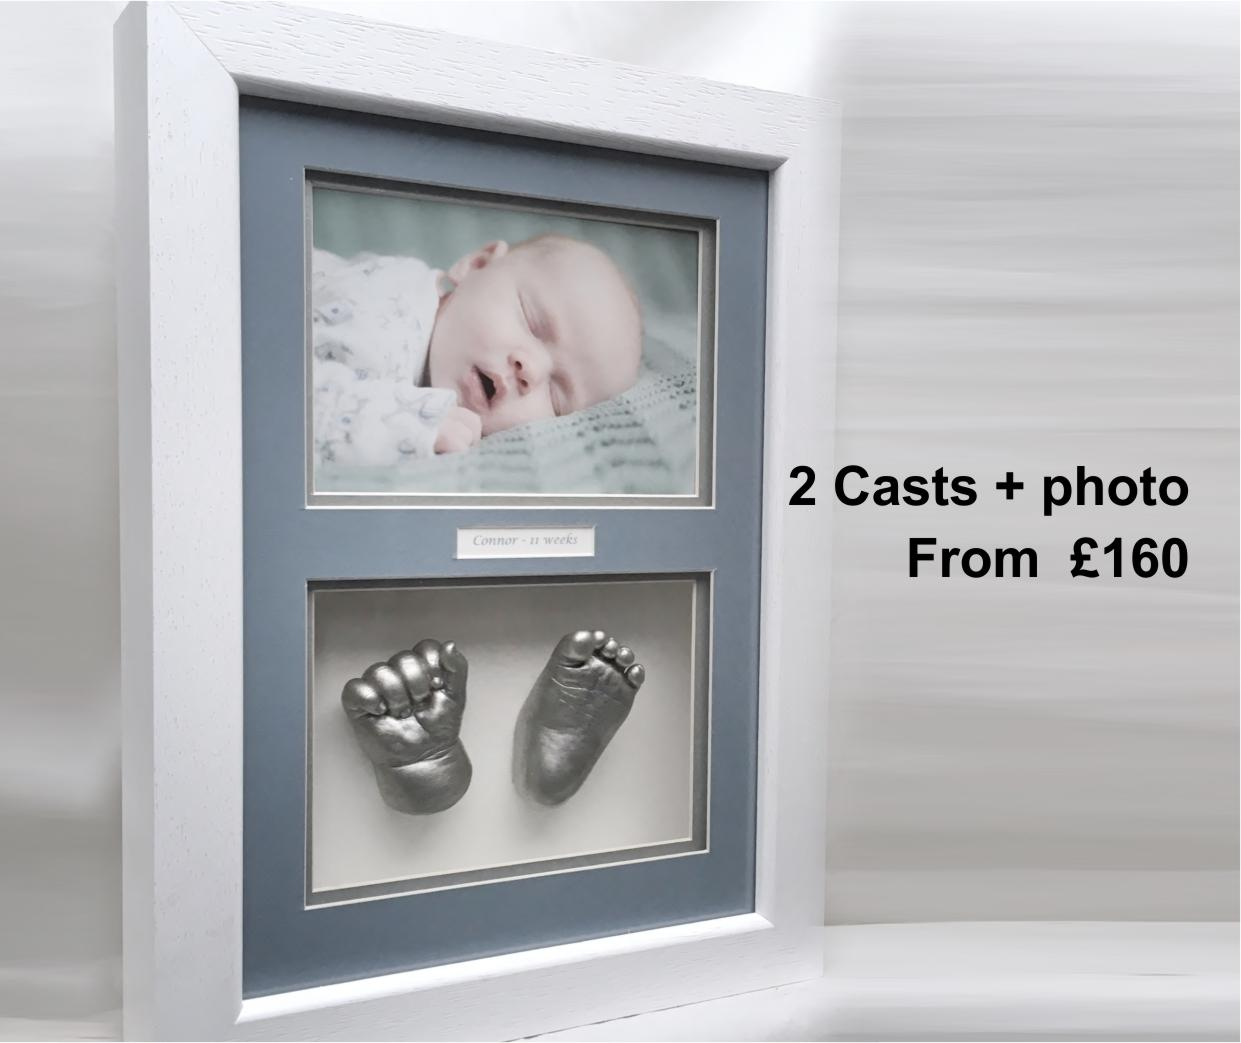 Babyprints price guide